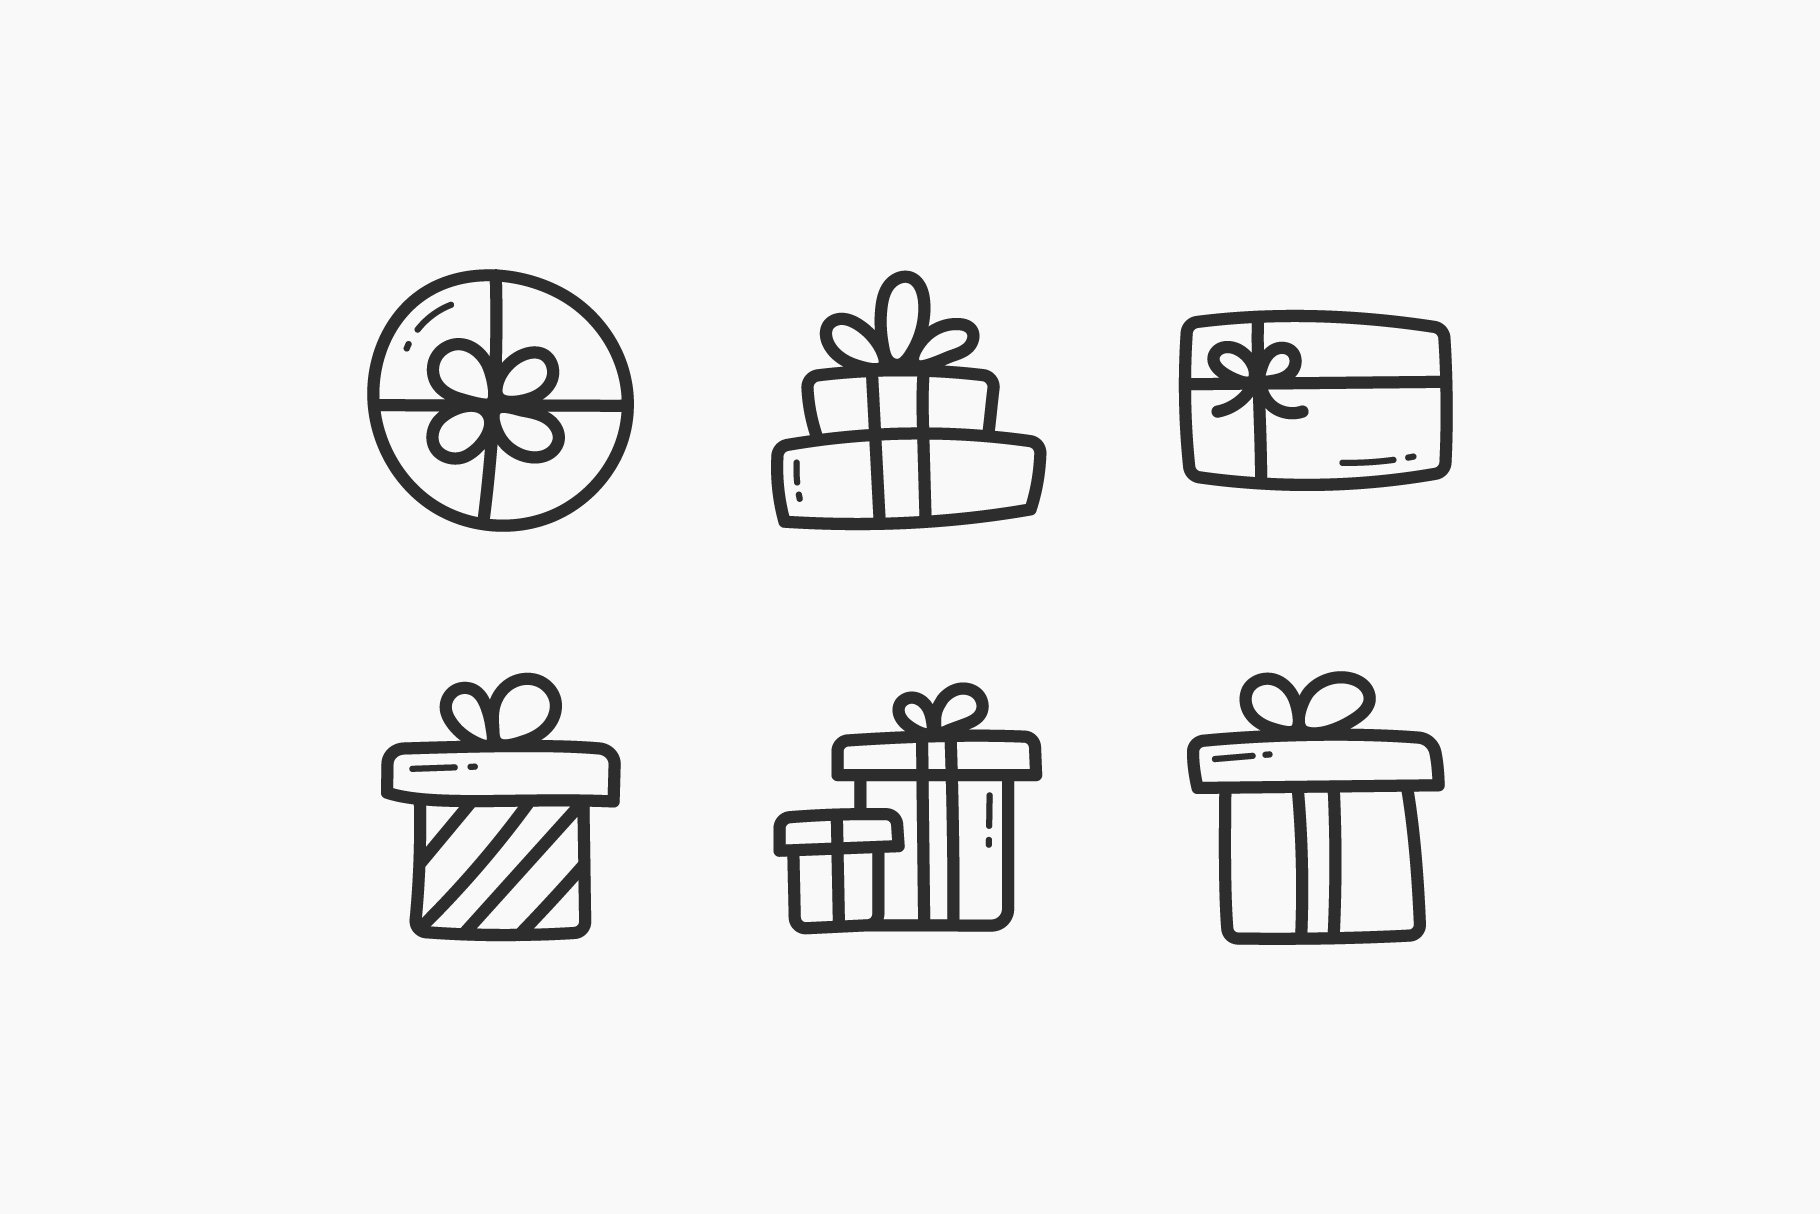 Presents Hand-Drawn Doodle Icons example image 2